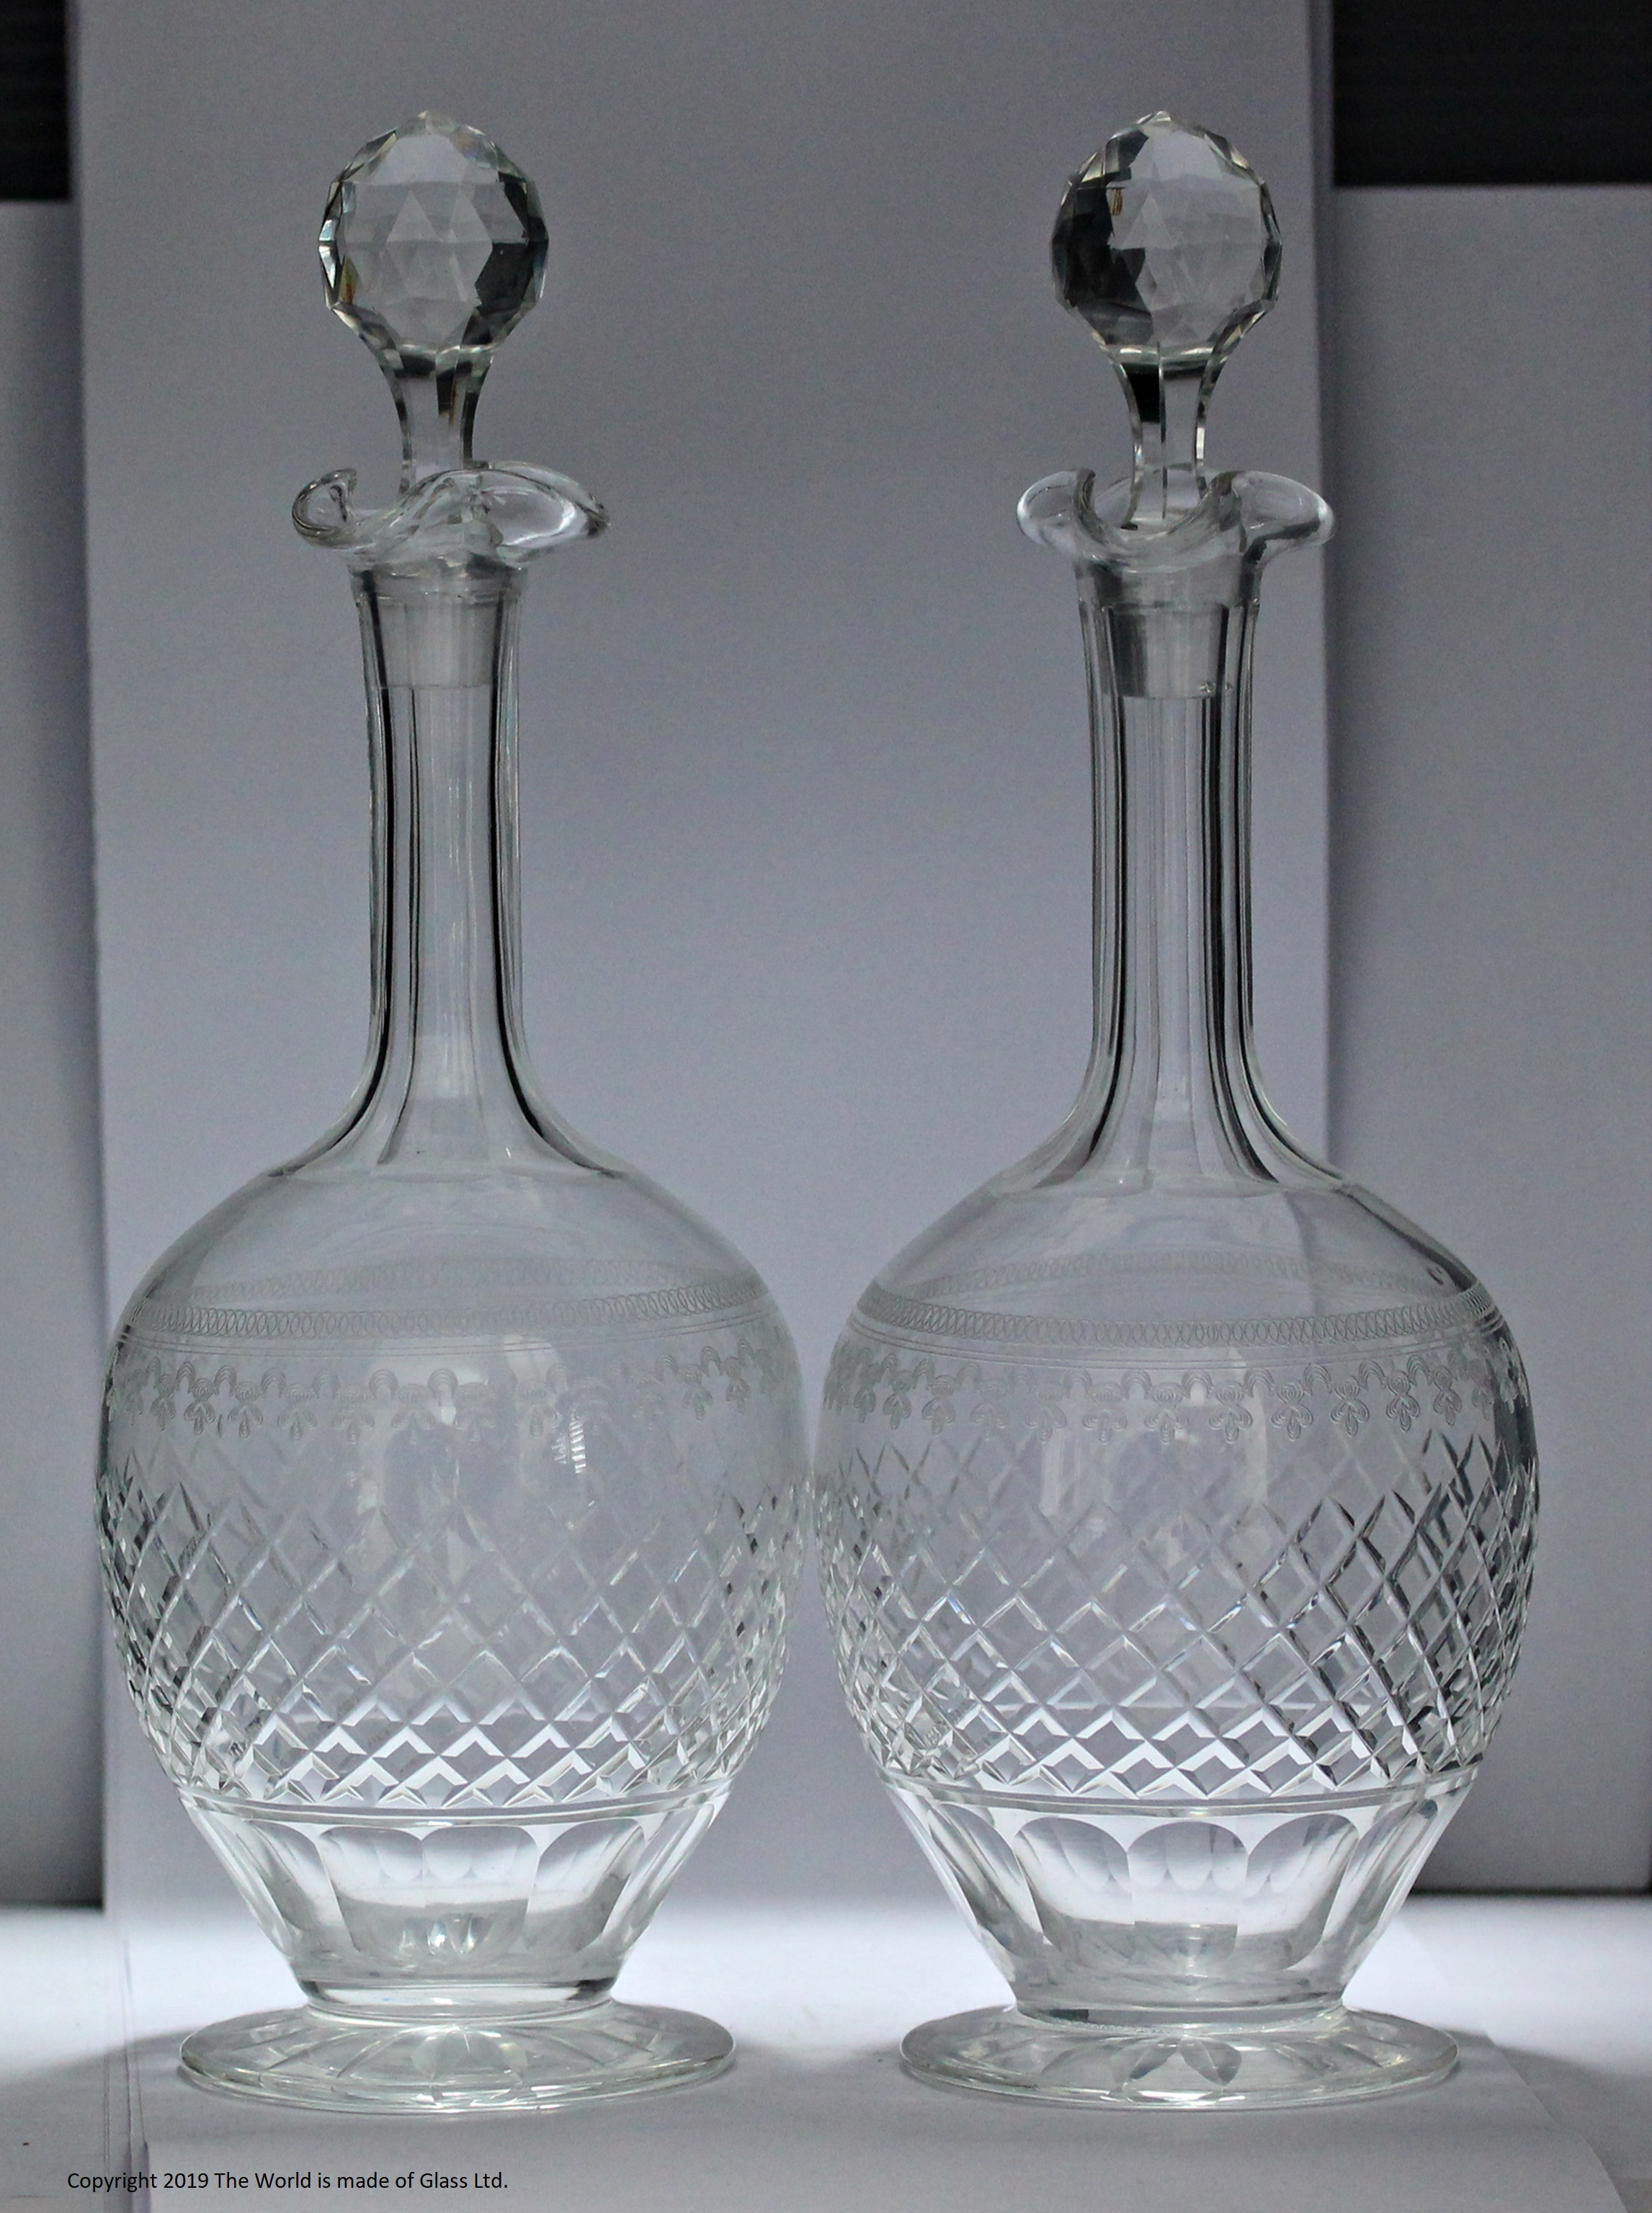 Pair of Pall Mall/Lady Hamilton pattern shaft and globe decanters